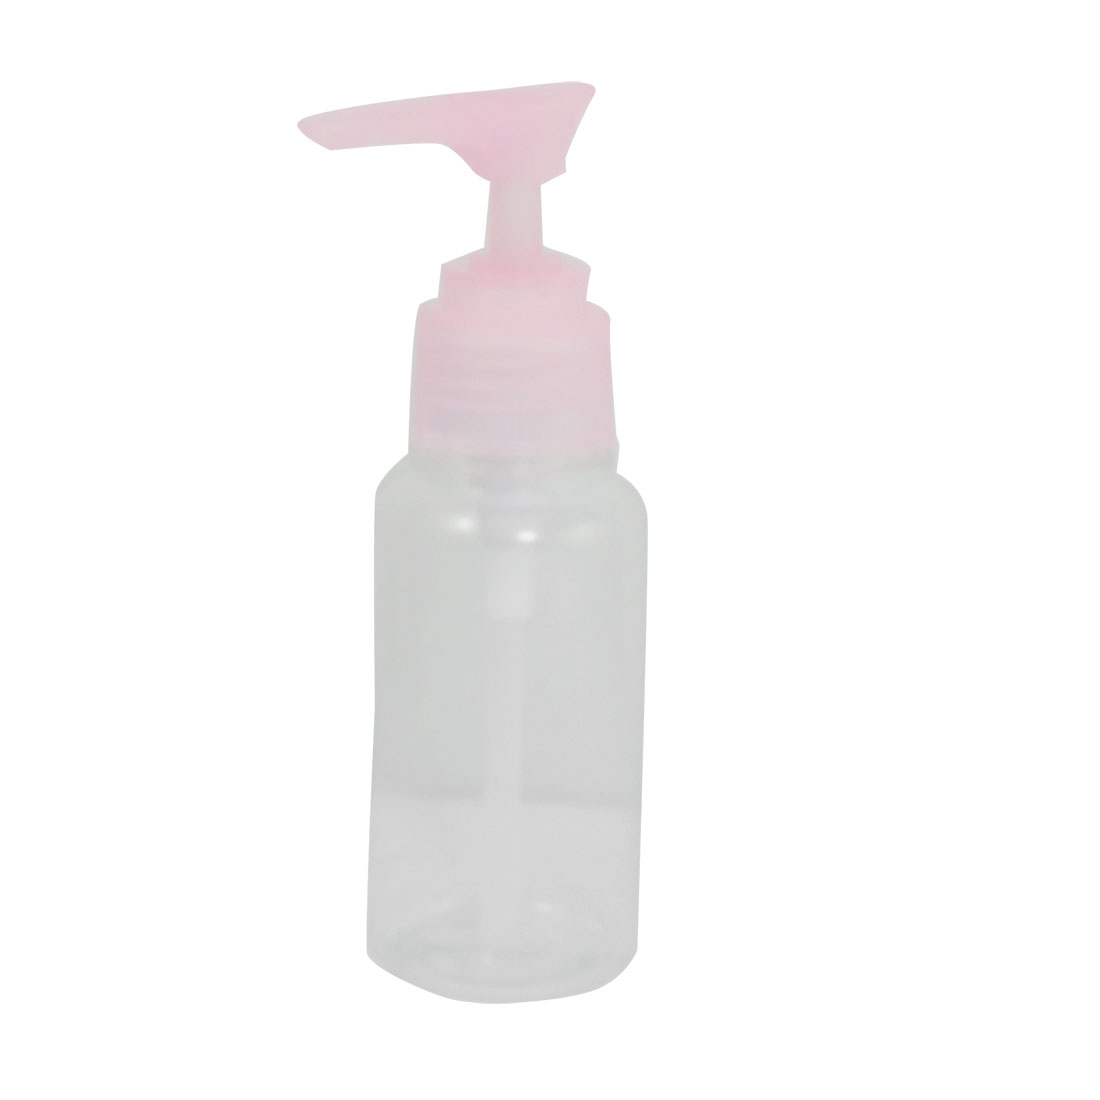 Travel Atomizer Beauty Tool Pink Clear Water Spray Bottle 75ml